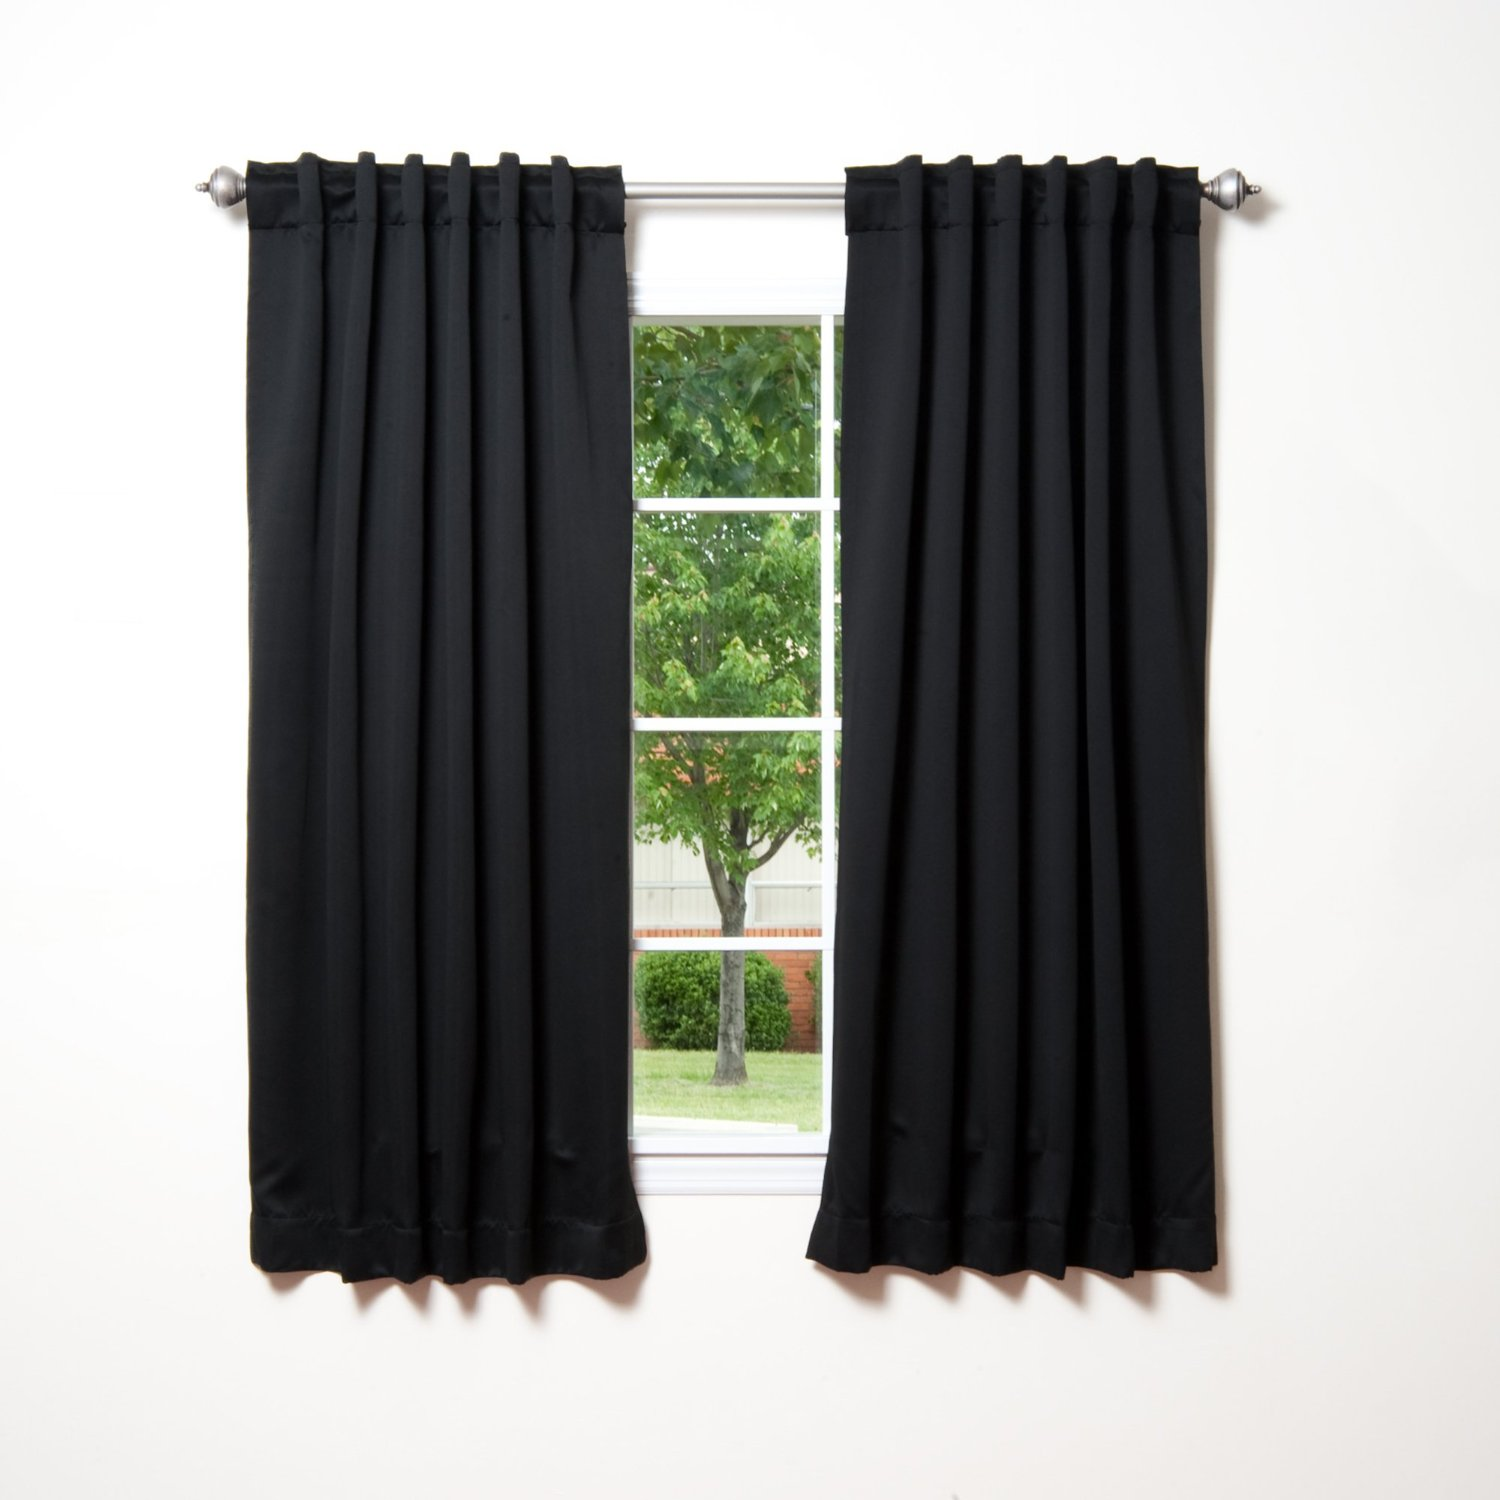 Blackout curtains for bedroom - Best Home Fashion Insulated Blackout Curtains For Day Sleepers